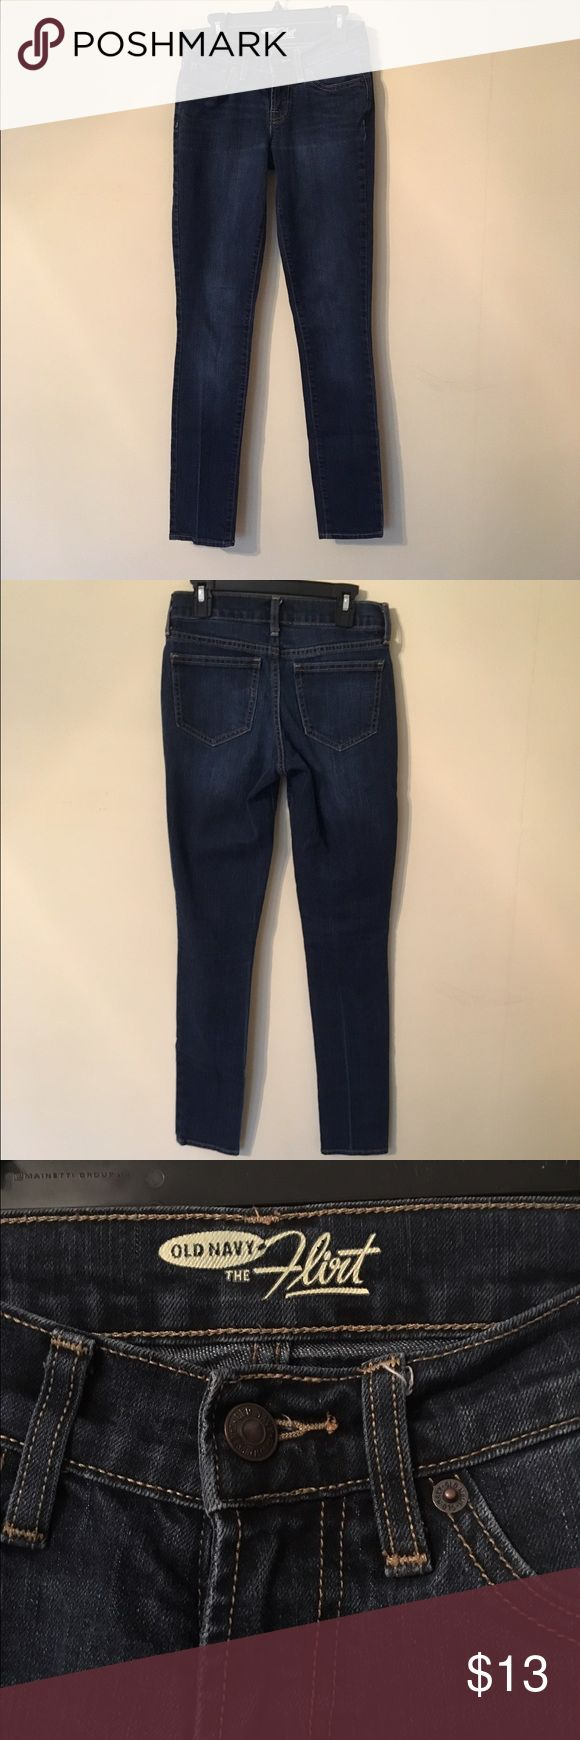 """SET of TWO PAIRS of Women's Jeans Size 00 Could be cut down into shorts for summer! First pair are Old Navy Brand in the style """"Flirt"""" dark-wash jeans. Second pair are Hollister dark-wash jeans. Both are Size 00 skinny legs, I am willing to sell them separately if asked! I also take offers! Hollister Jeans Skinny"""